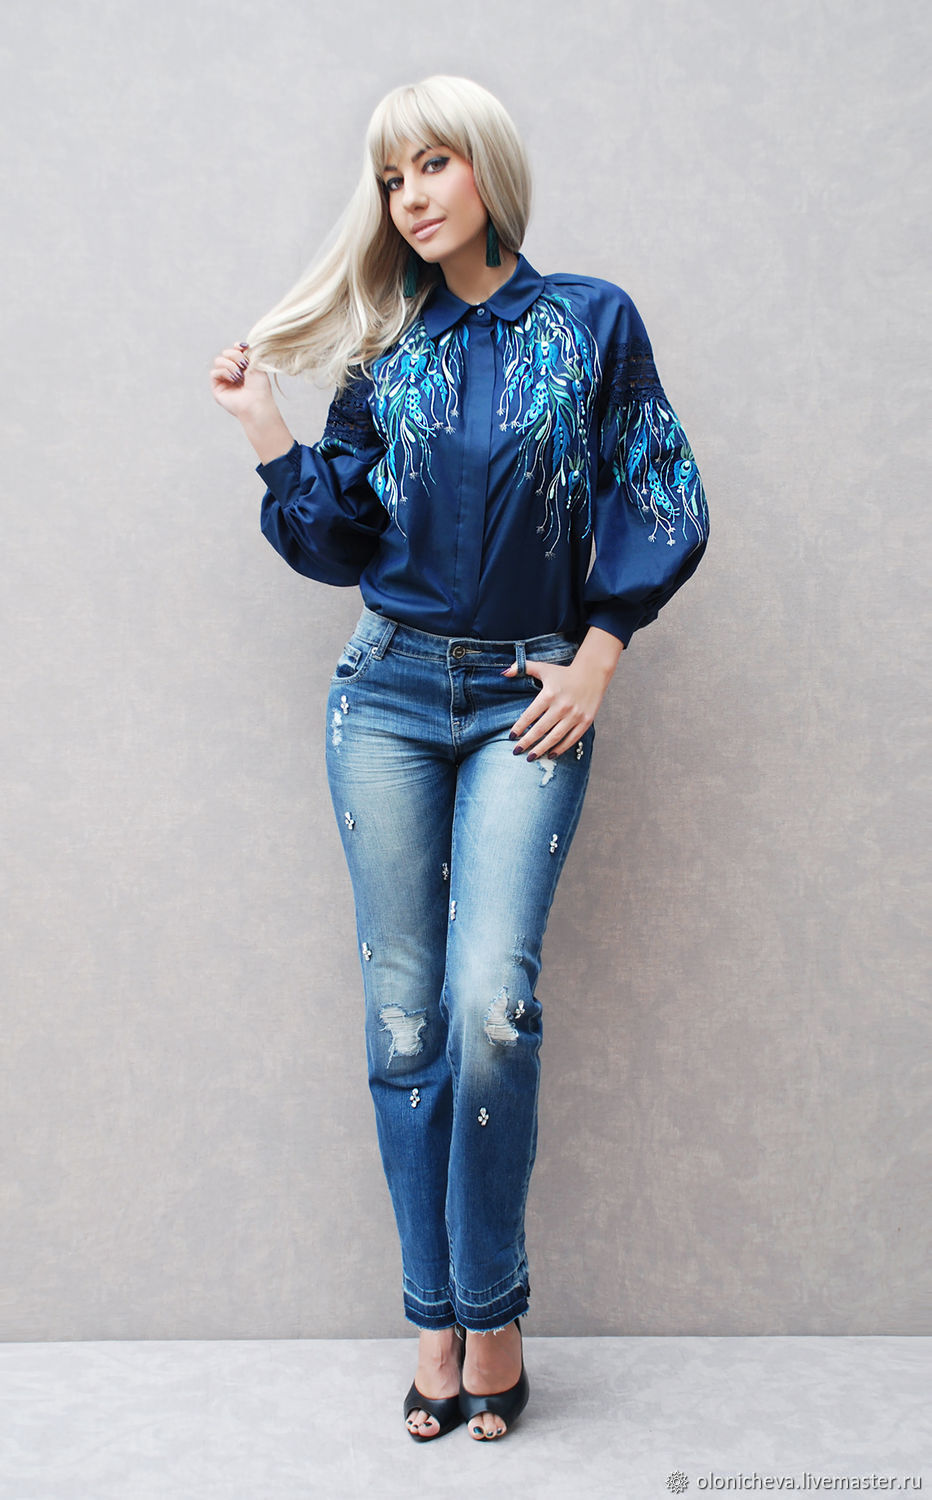 Blouse with hand embroidery 'Moon herbs-2' New collection, Blouses, Vinnitsa,  Фото №1